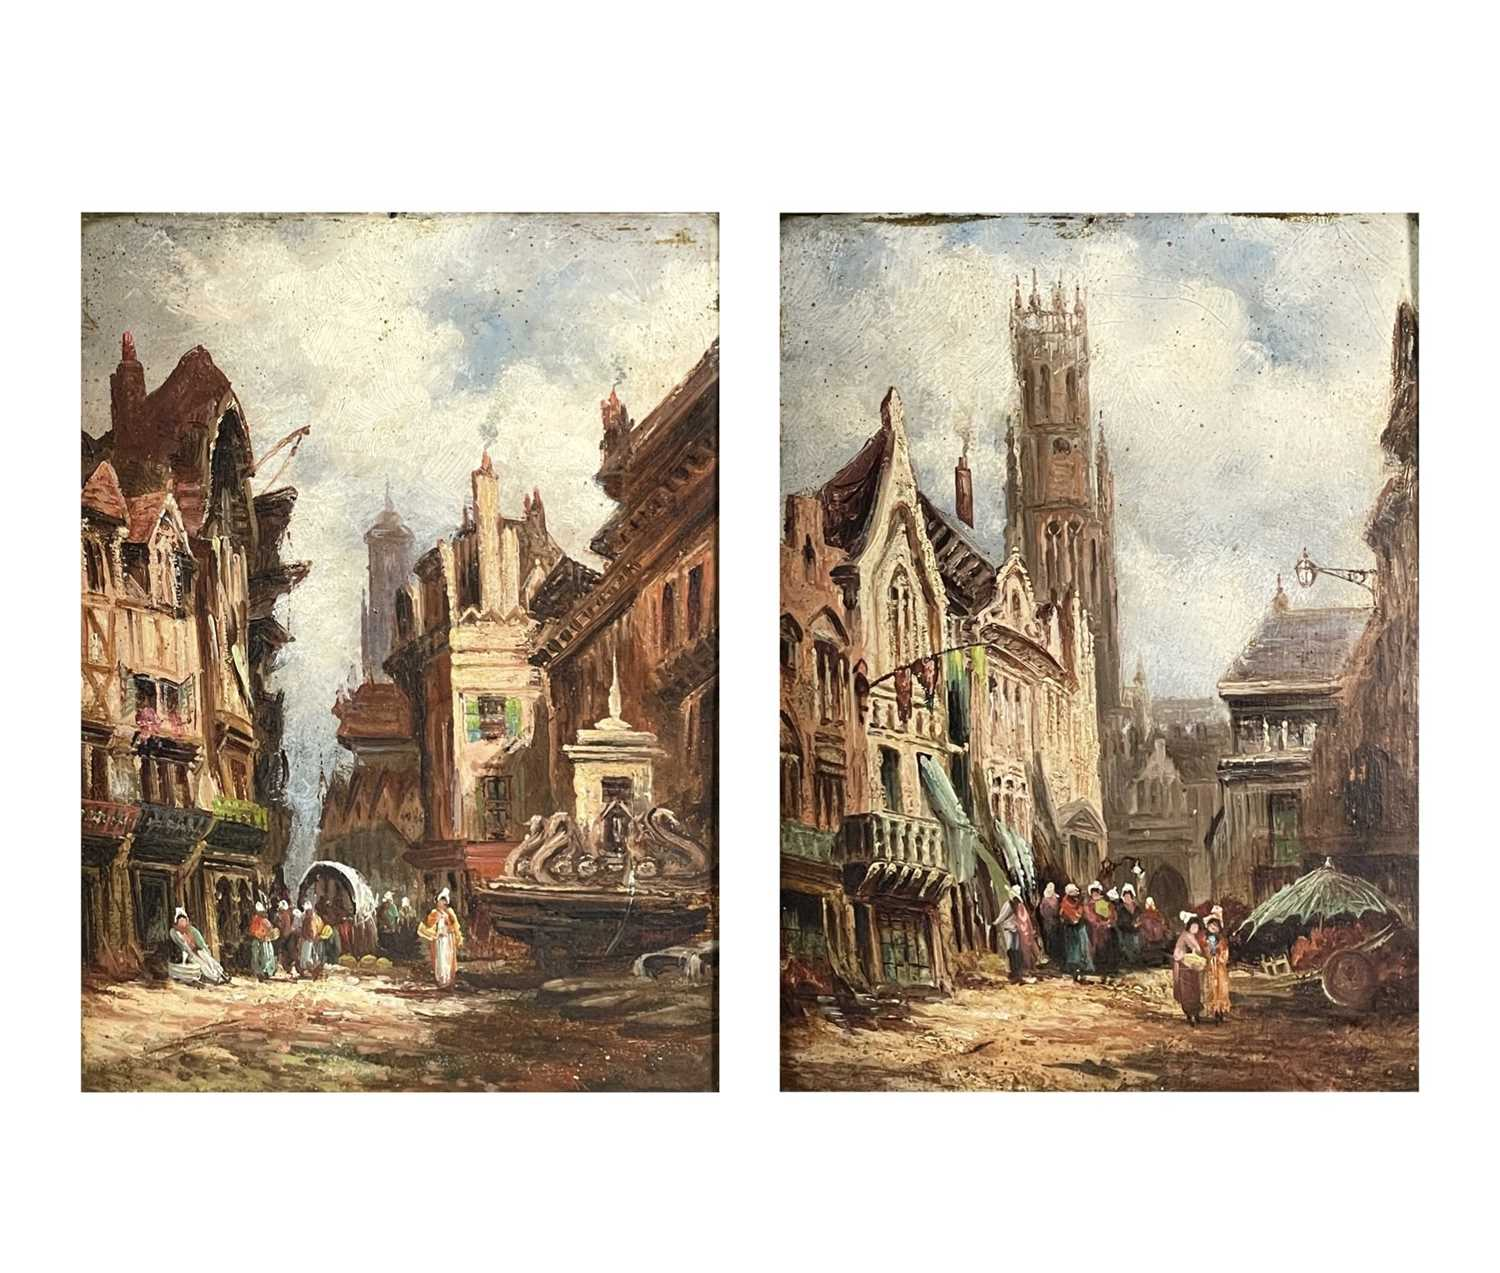 Follower of Henry Thomas SCHAEFER (1854-1915) Town Streets Oil on canvas Indistinctly signed